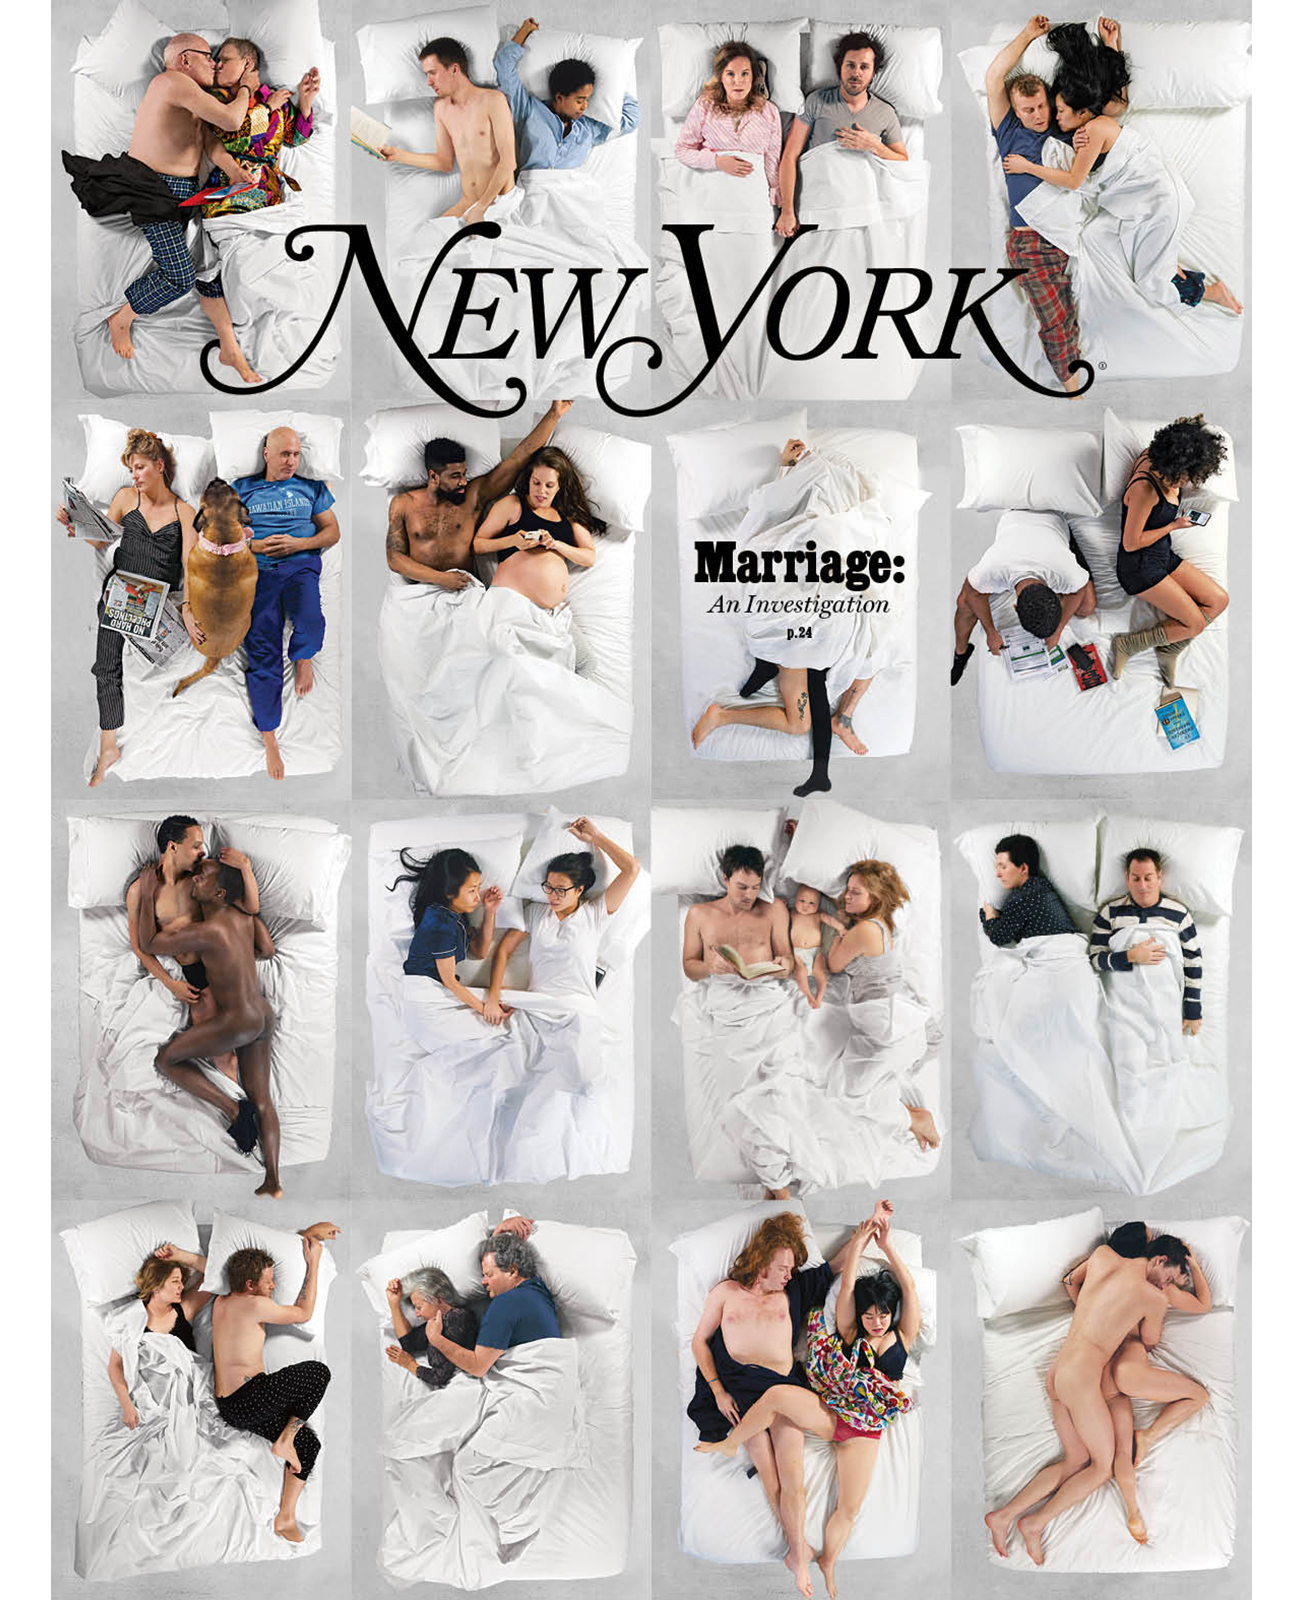 Marriage: An Investigation - Photographed by New York Magazine